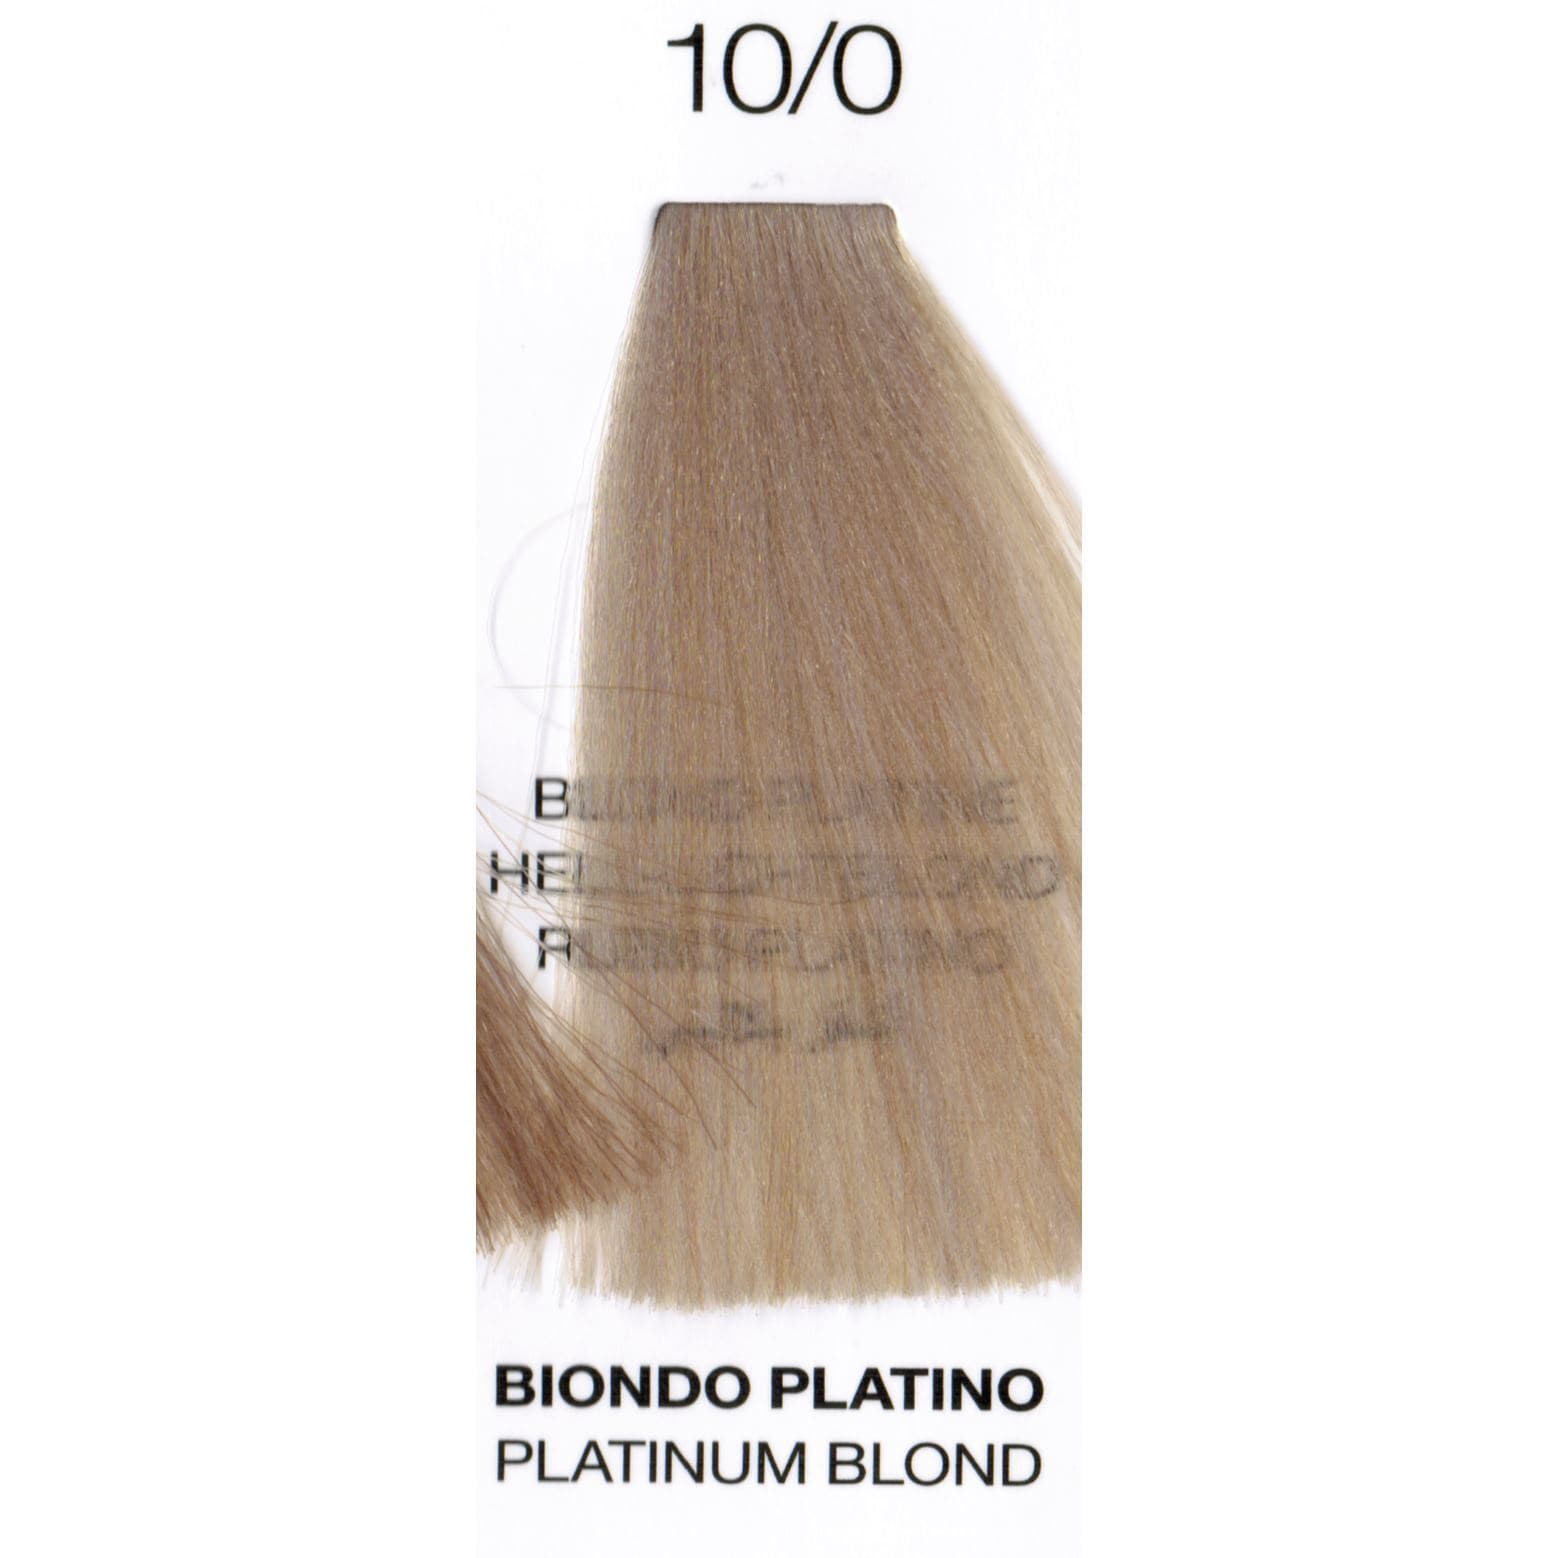 10/0 Platinum Blonde | Purity | Ammonia-Free Permanent Hair Color - SH Salons